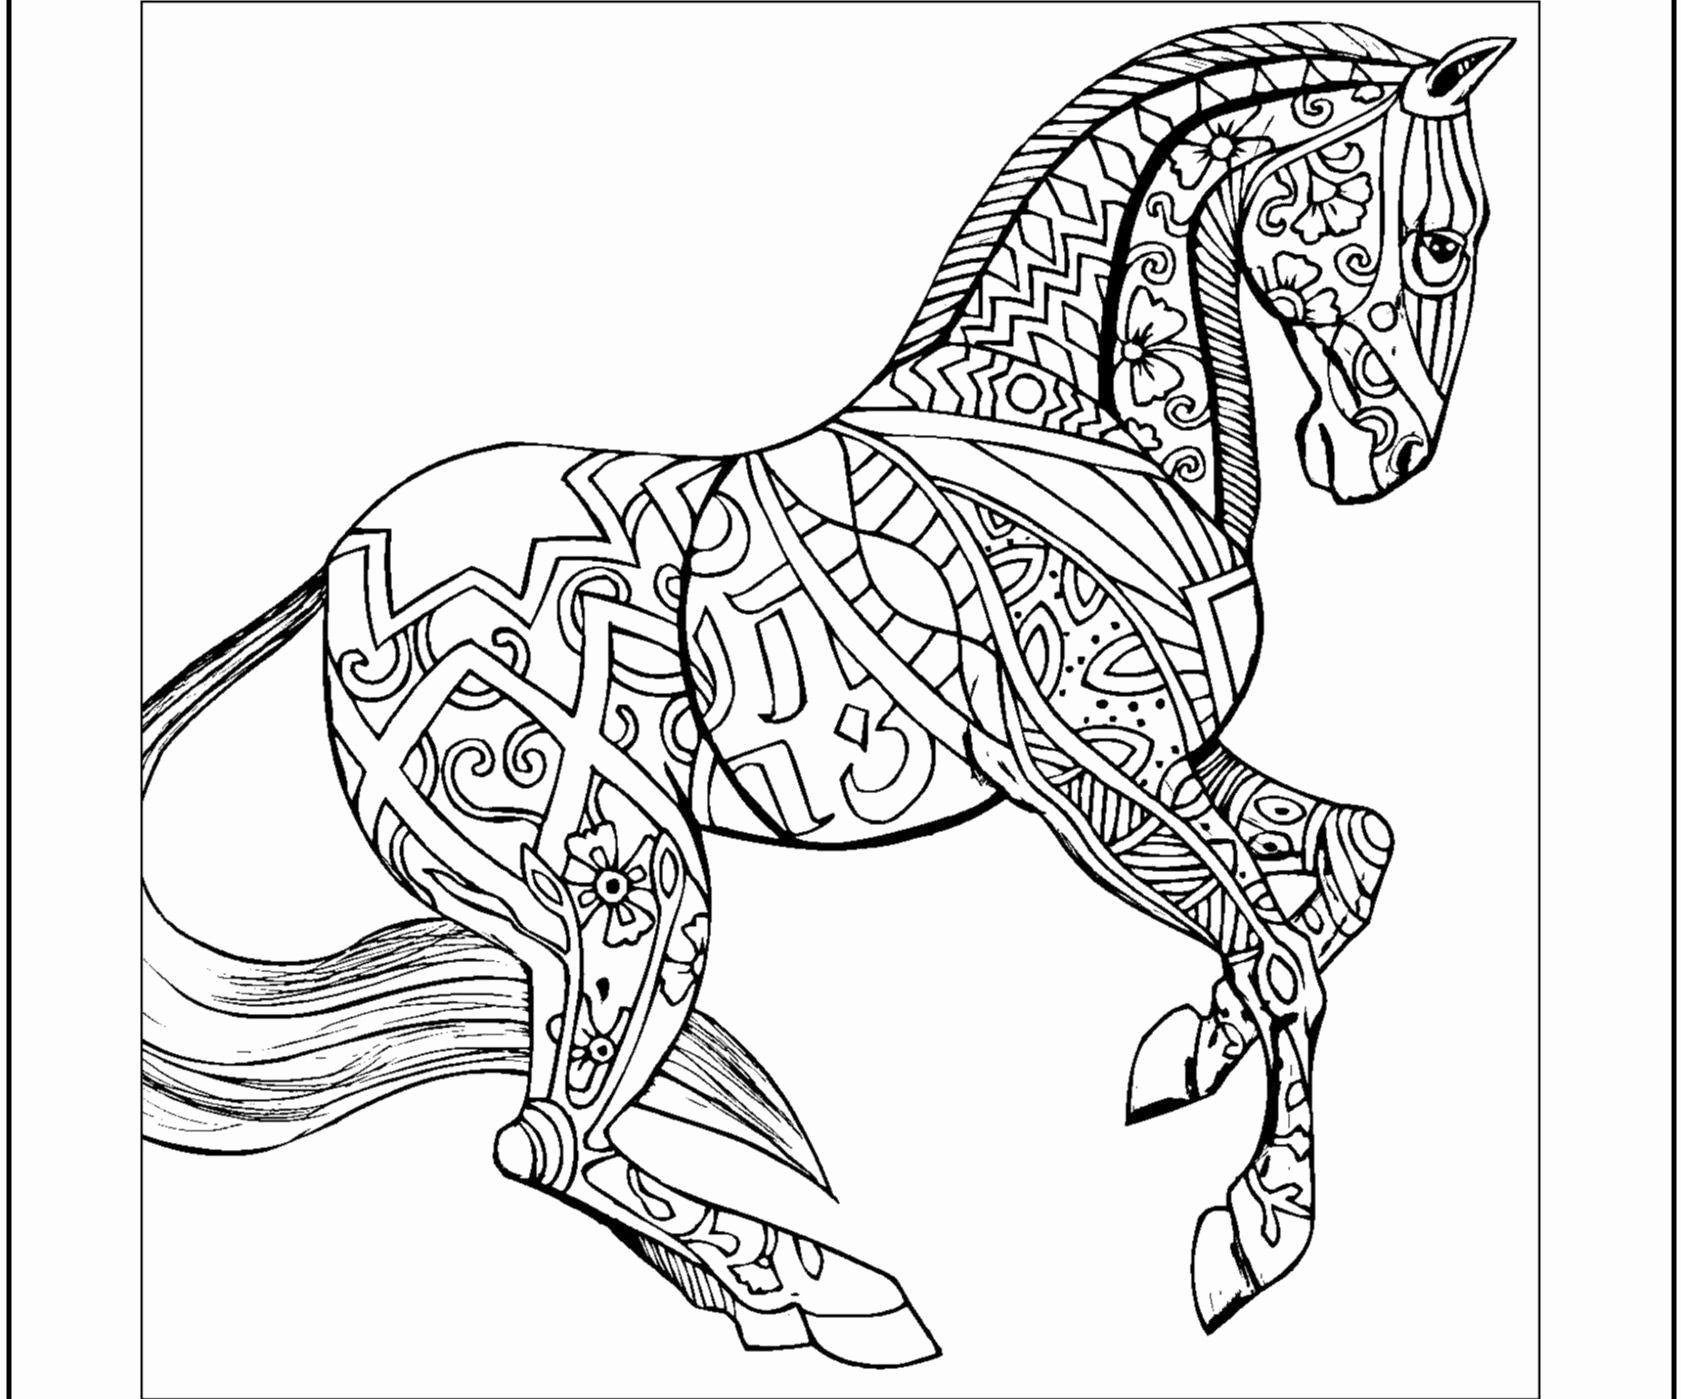 horse pictures to print fun horse coloring pages for your kids printable print horse pictures to